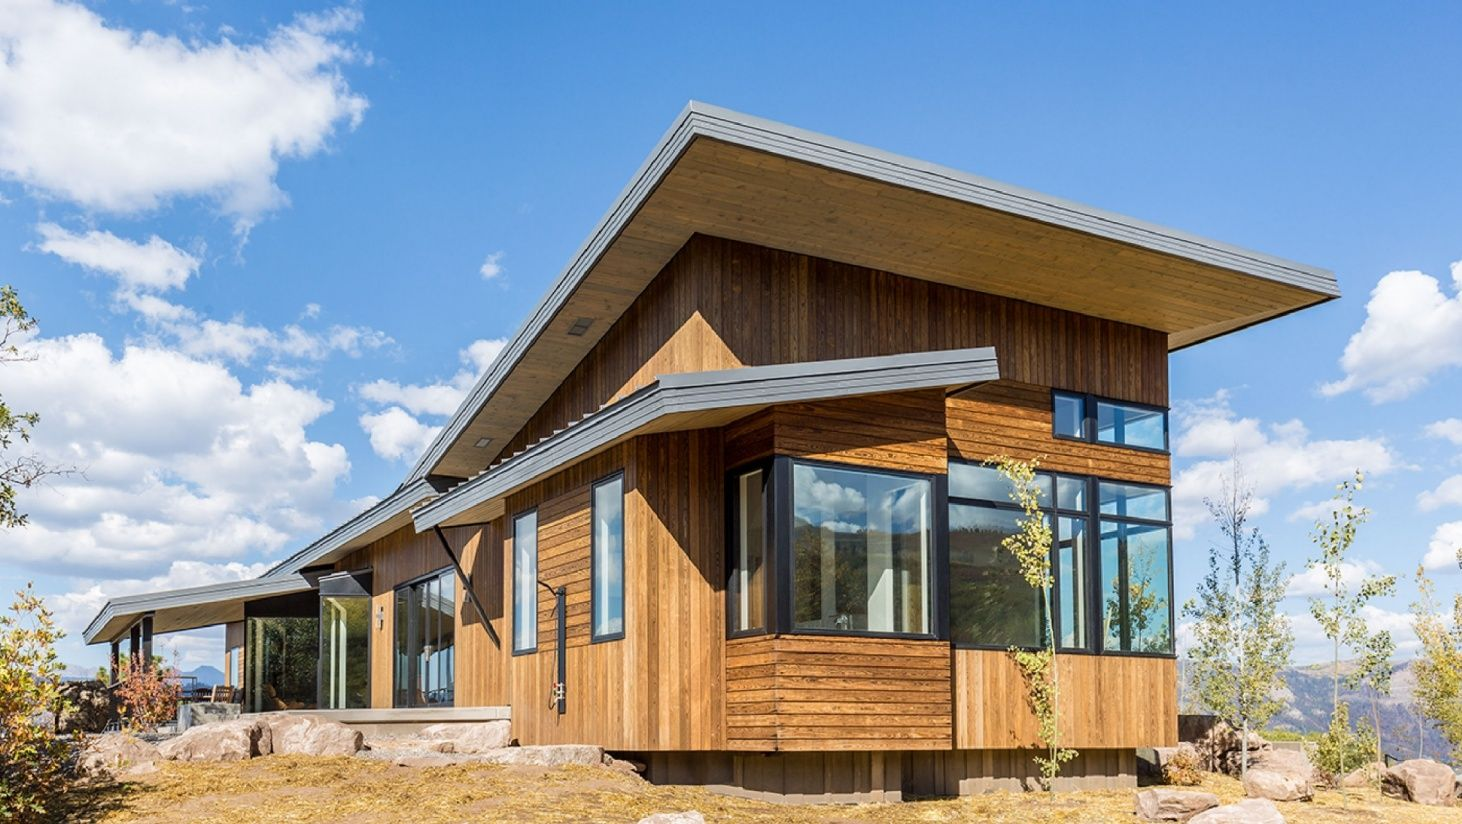 Maintenance free wood for cladding decking siding and